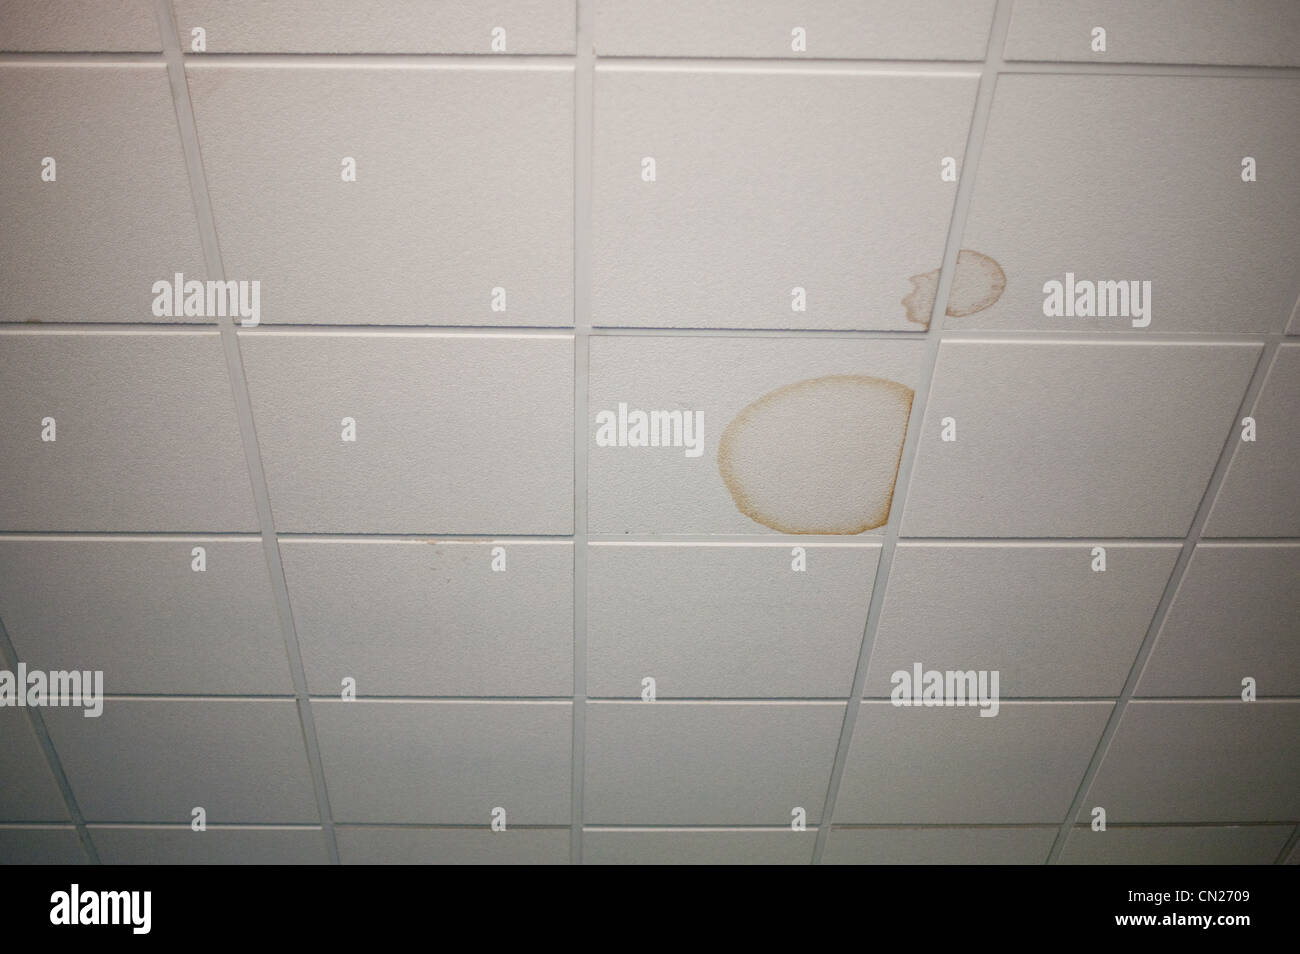 Stained ceiling tiles - Stock Image